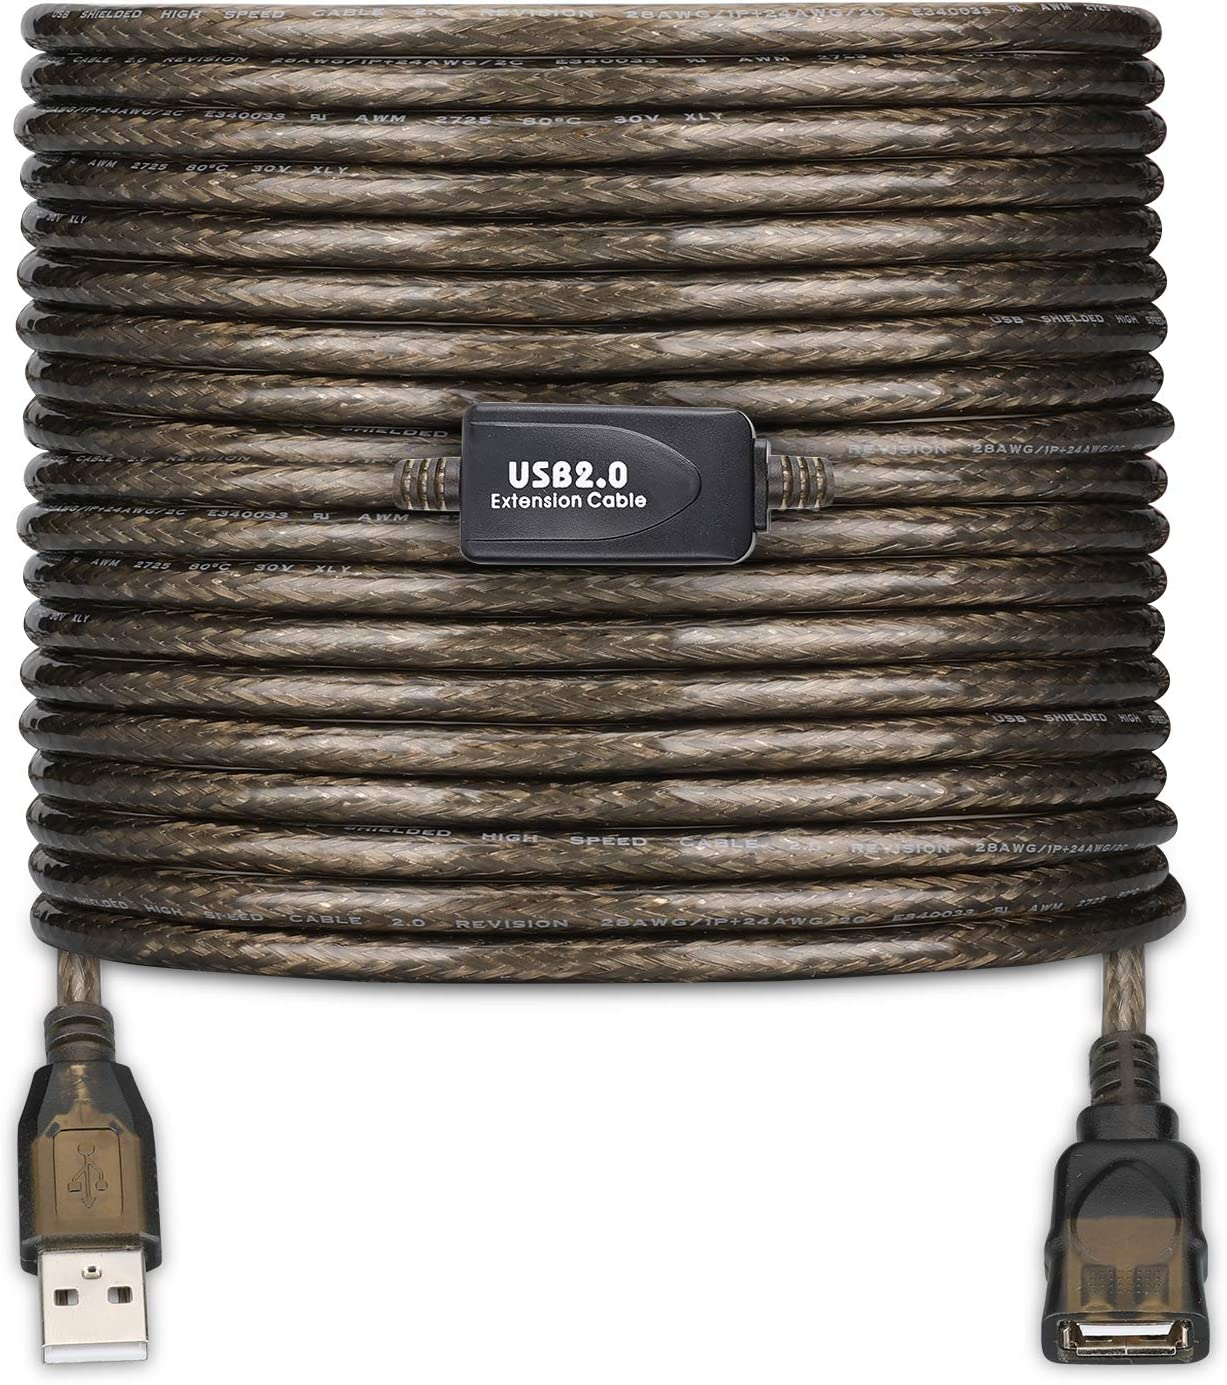 LDKCOK USB 2.0 Type A Male to A Female Active Repeater Extension Cable 50ft, High Speed 480 Mbps